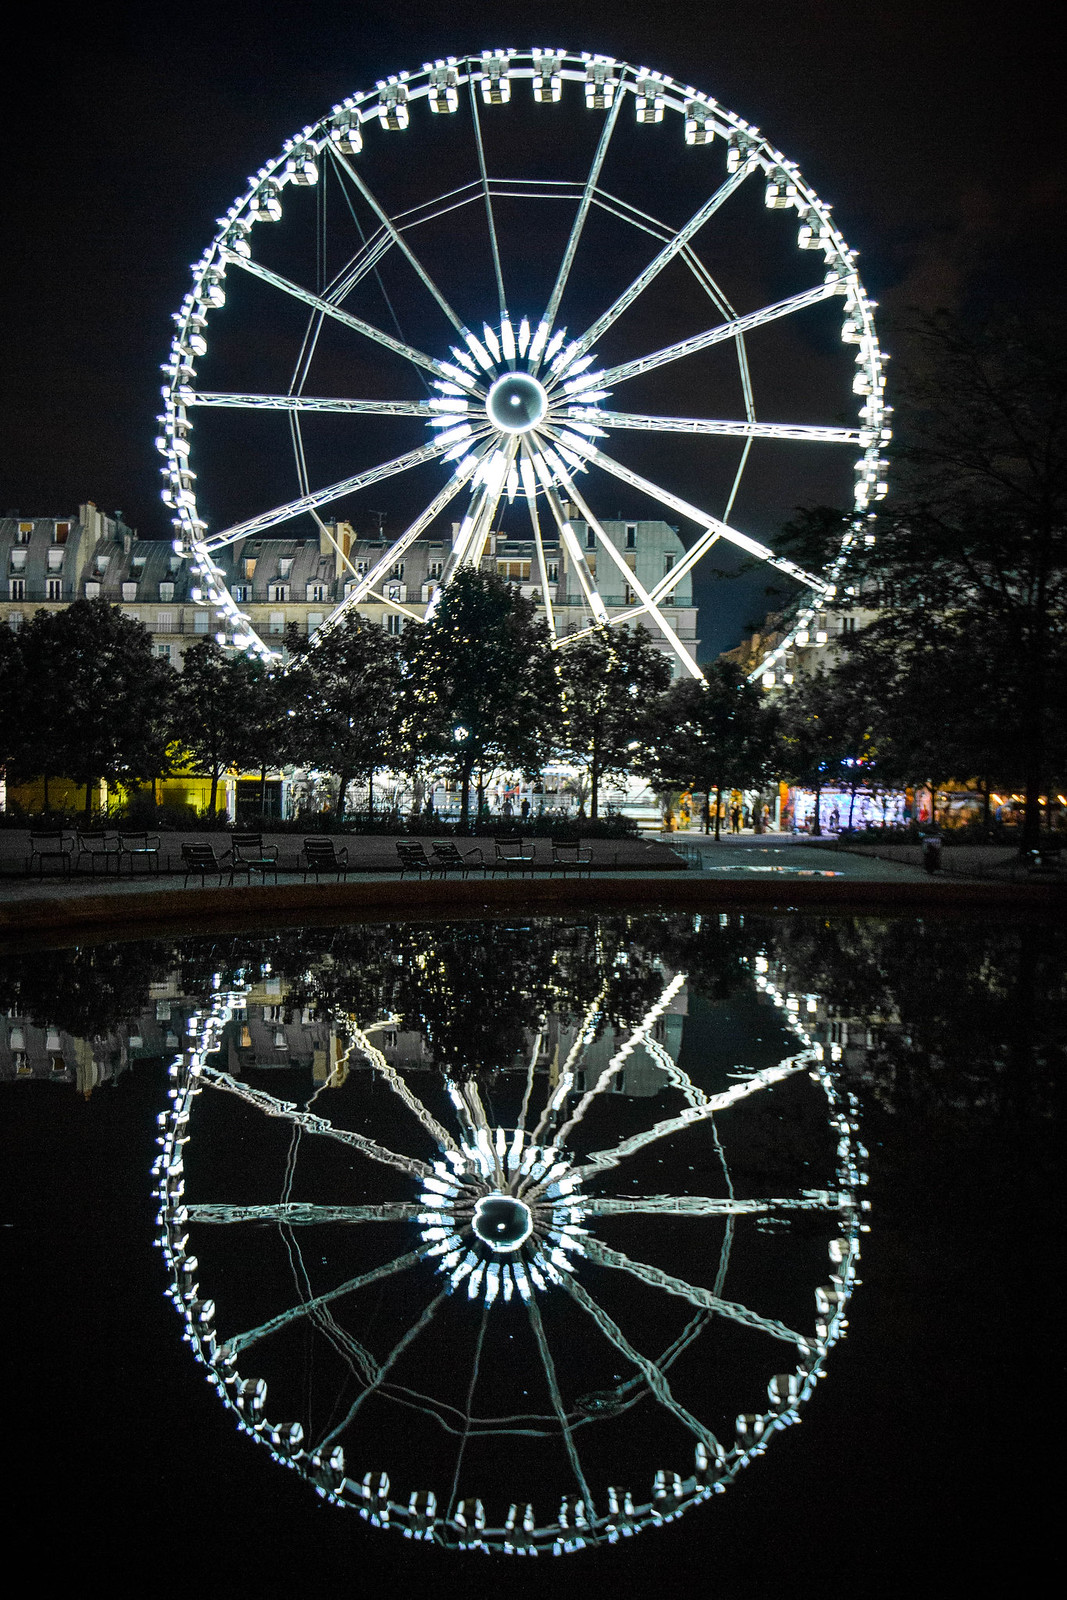 Tuileries Ferris Wheel, Night Reflection